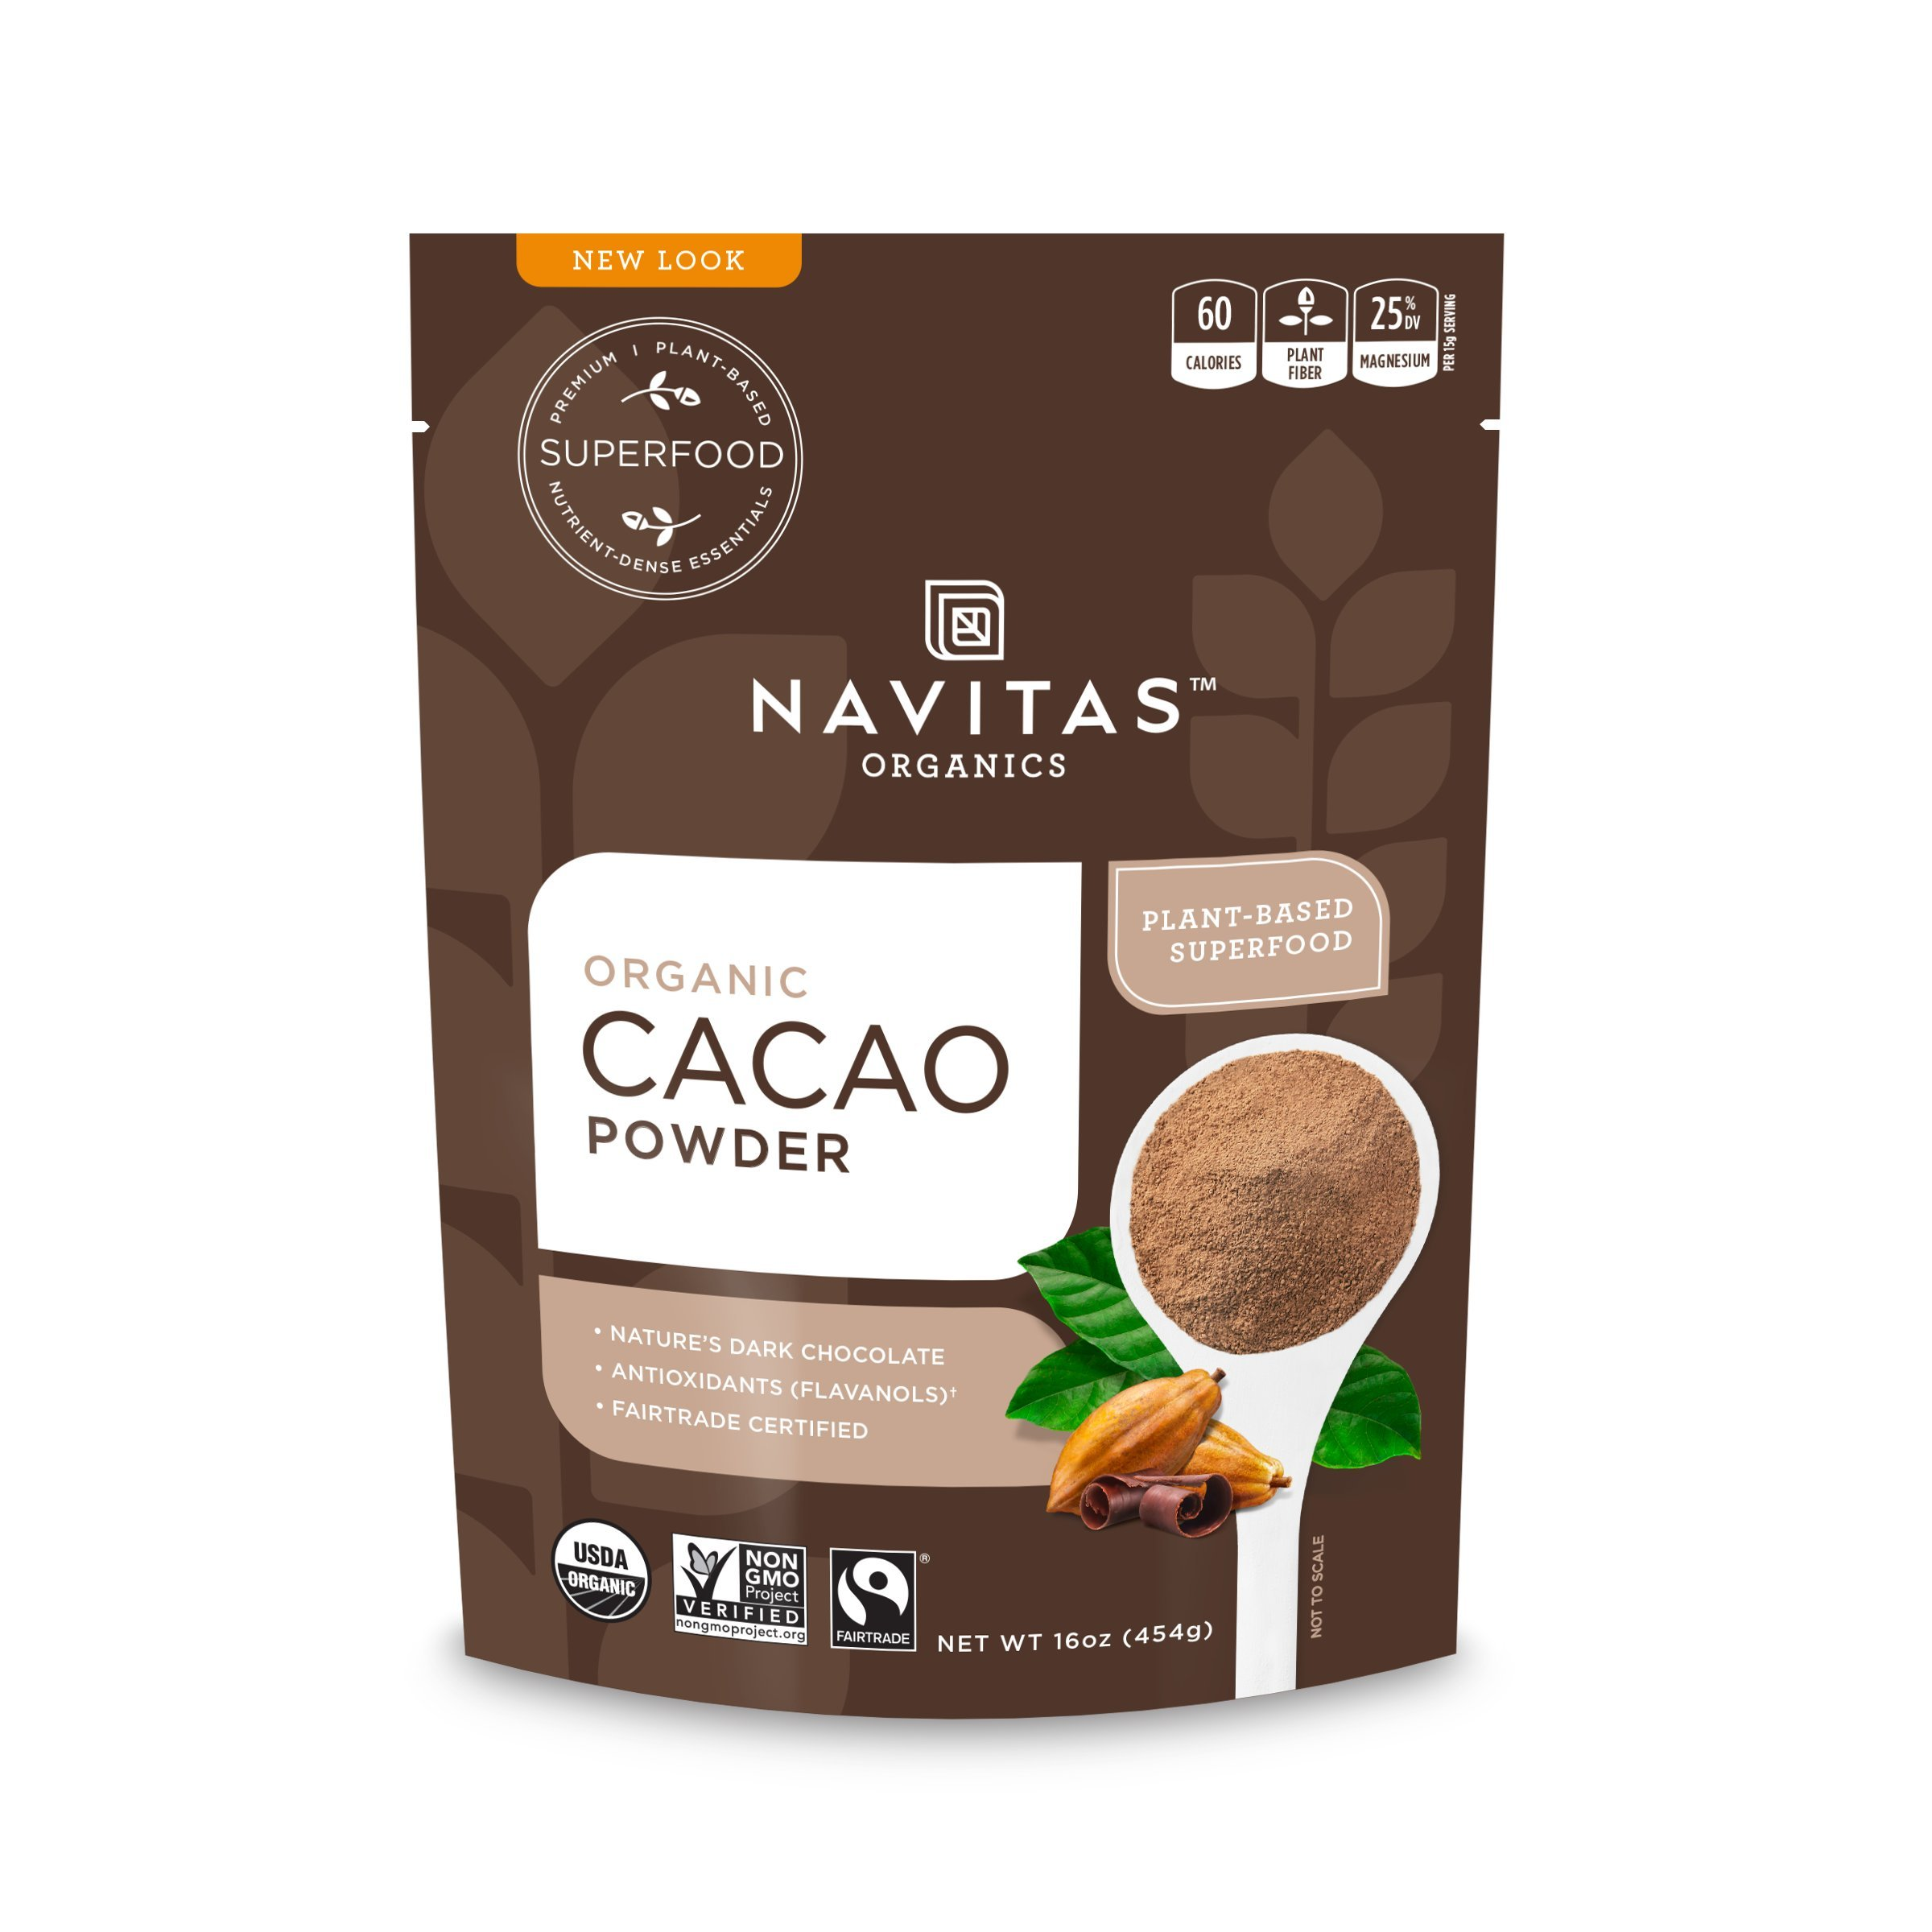 Navitas Organics Cacao Powder, 16 oz. Bags (Pack of 2) — Organic, Non-GMO, Fair Trade, Gluten-Free